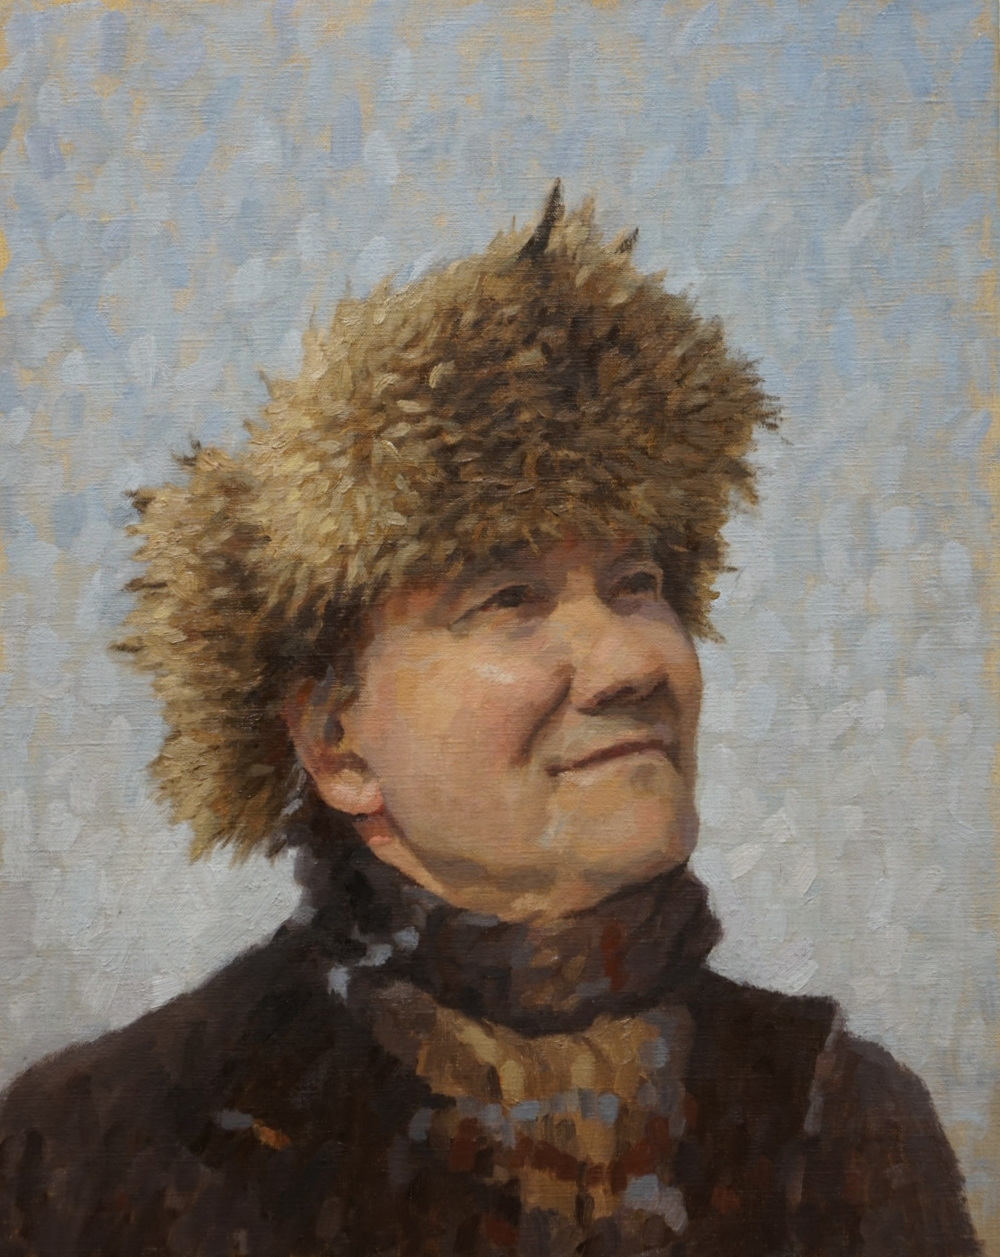 HRM with fur hat